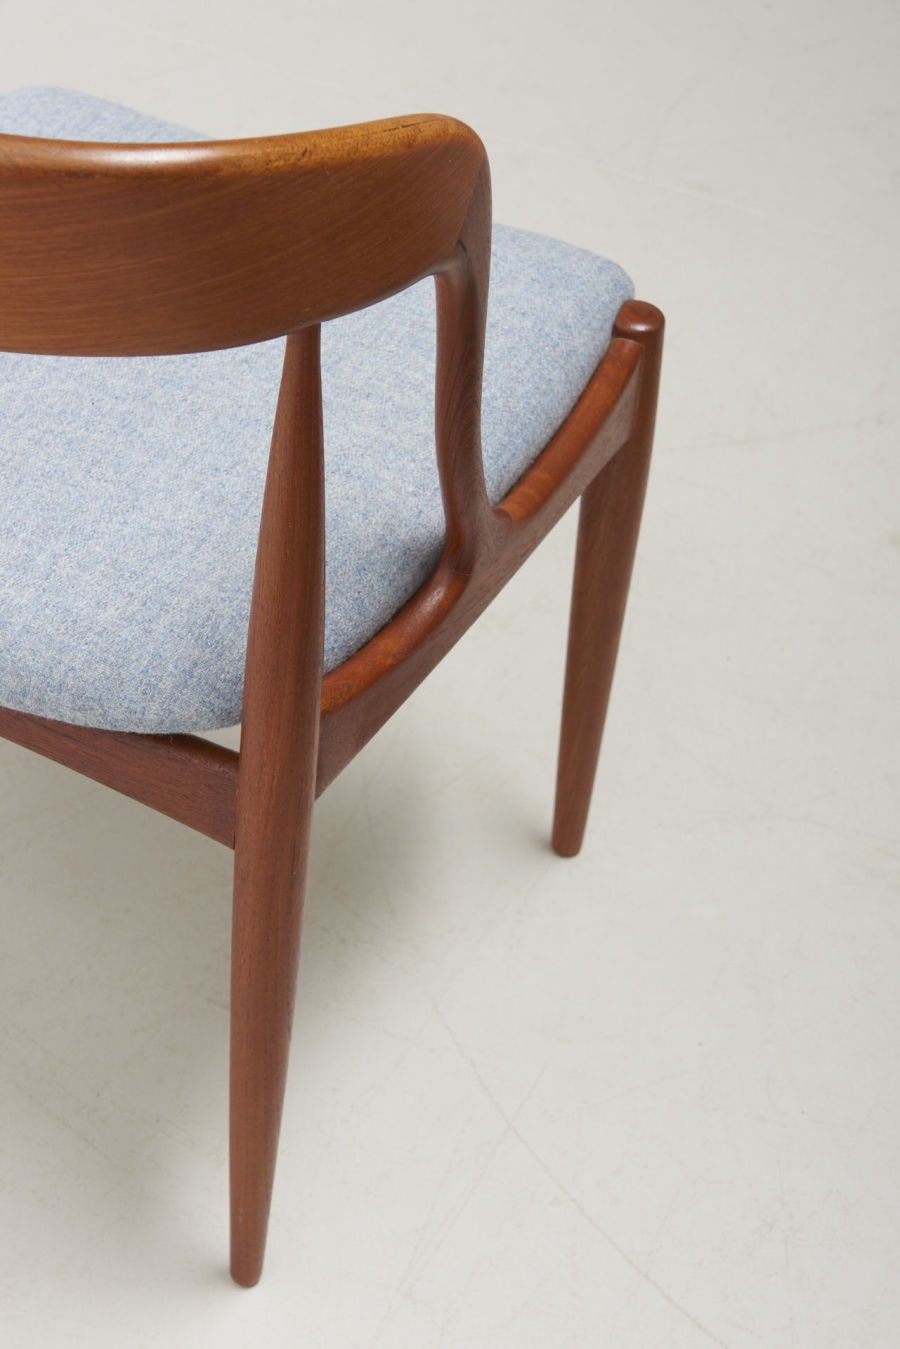 modestfurniture-vintage-2164-johannes-andersen-dining-chairs-uldum-model-1607